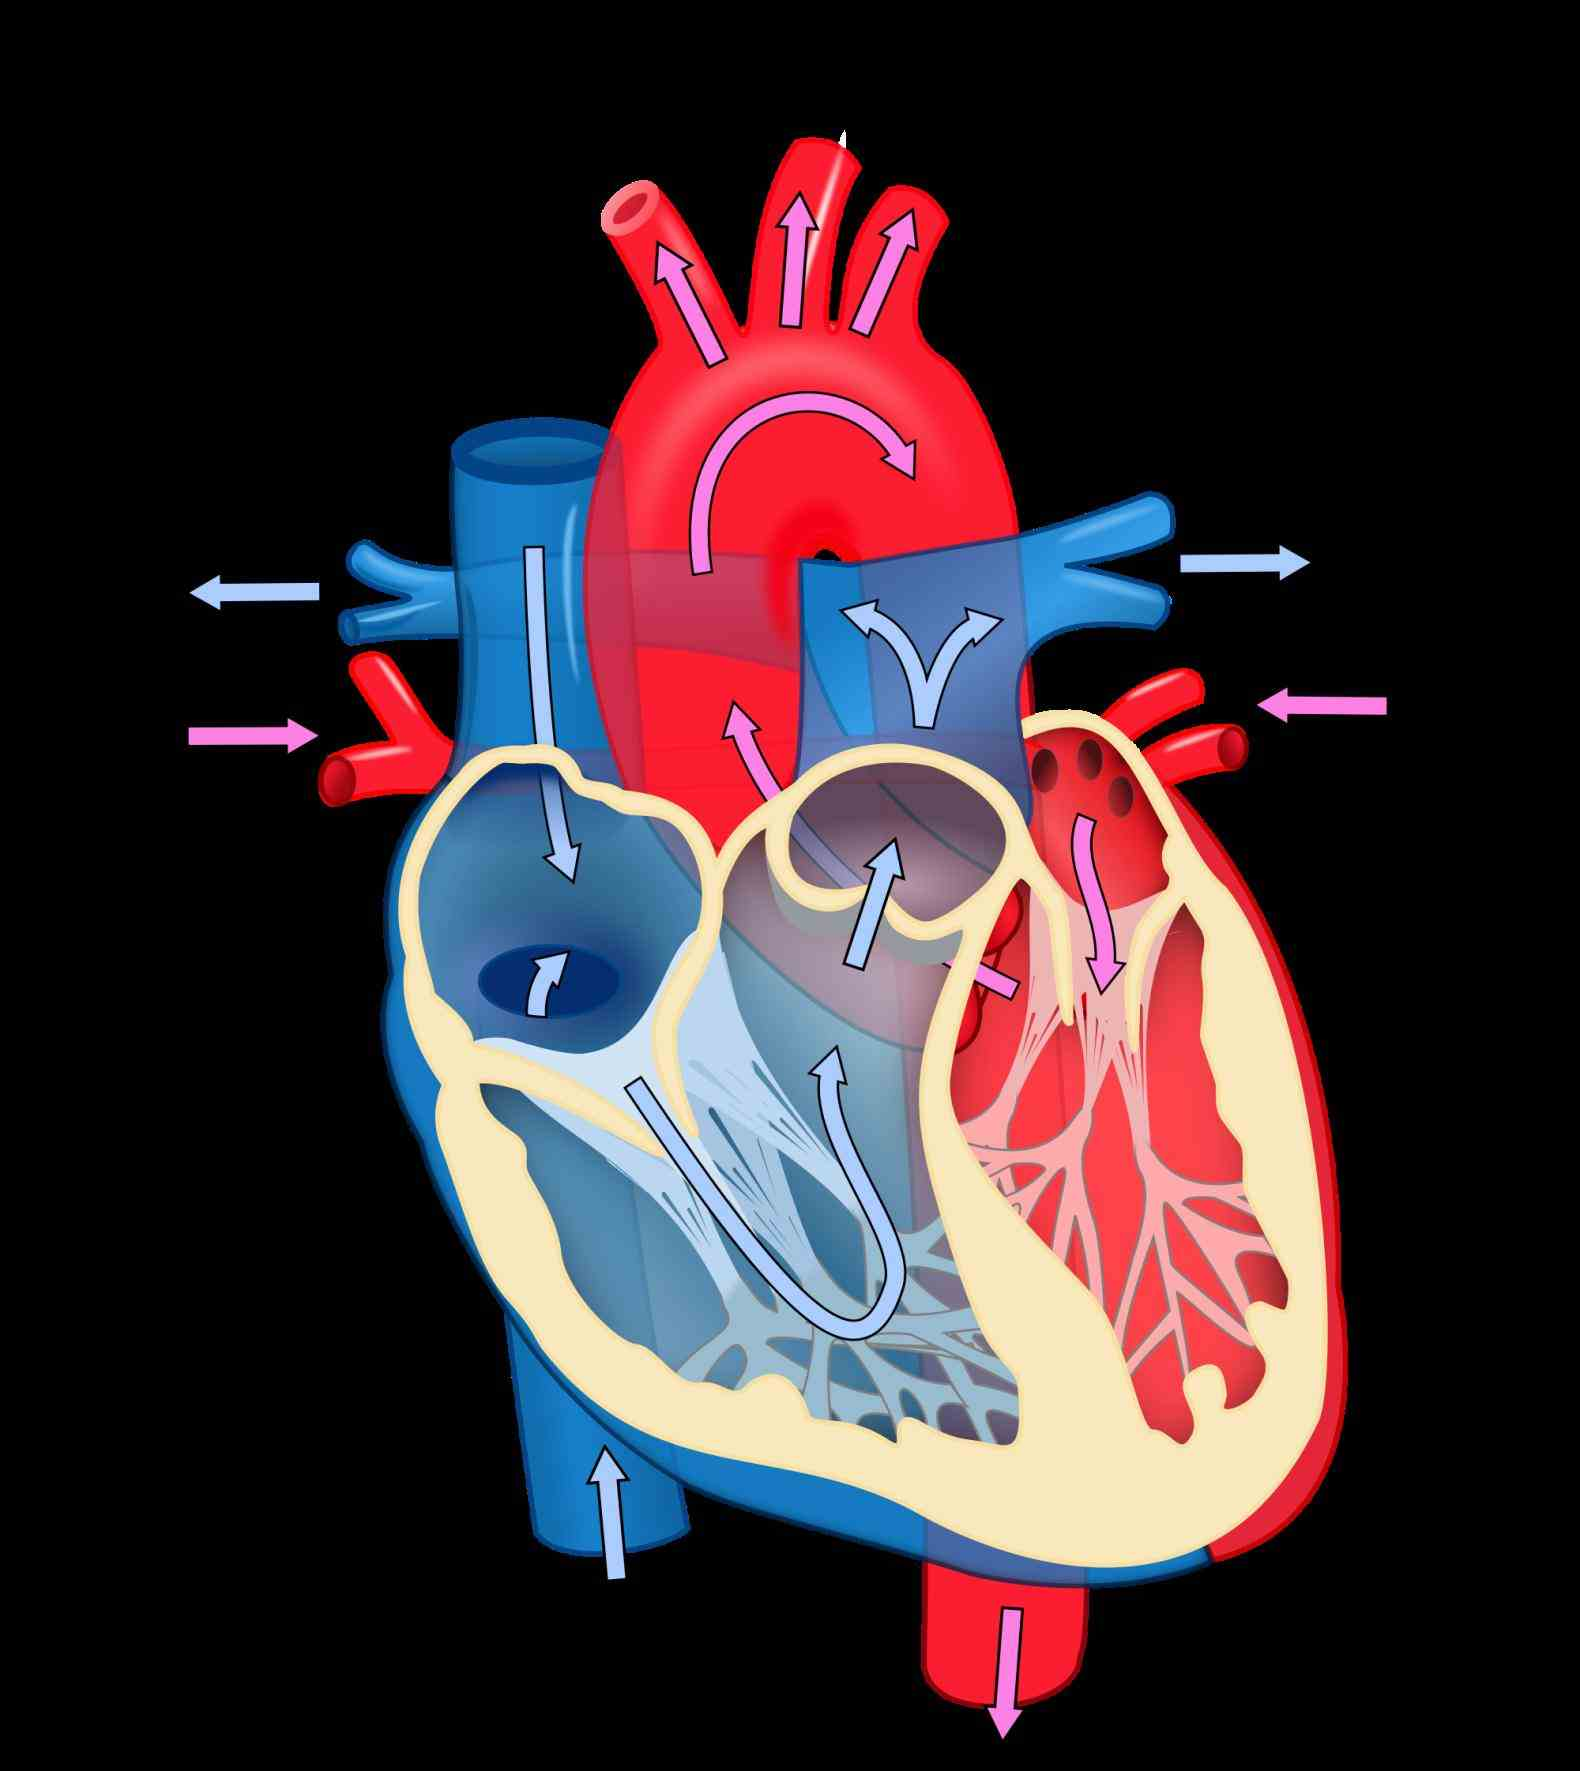 once each label is correct you will see how blood flows to from will  a Heart Diagram With Labels